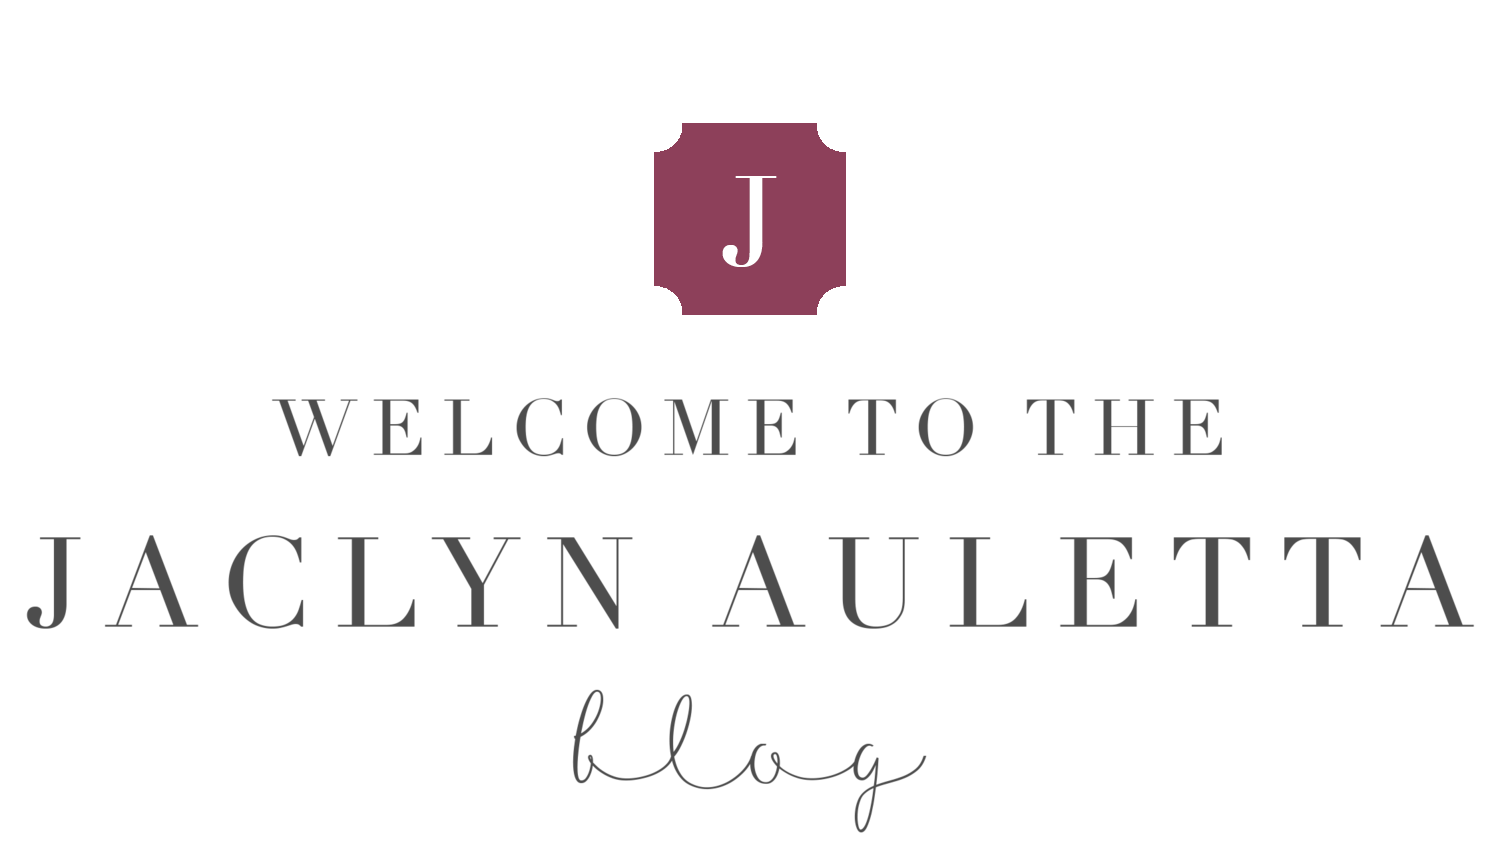 Jaclyn Auletta Blog l North Carolina Lifestyle Blog